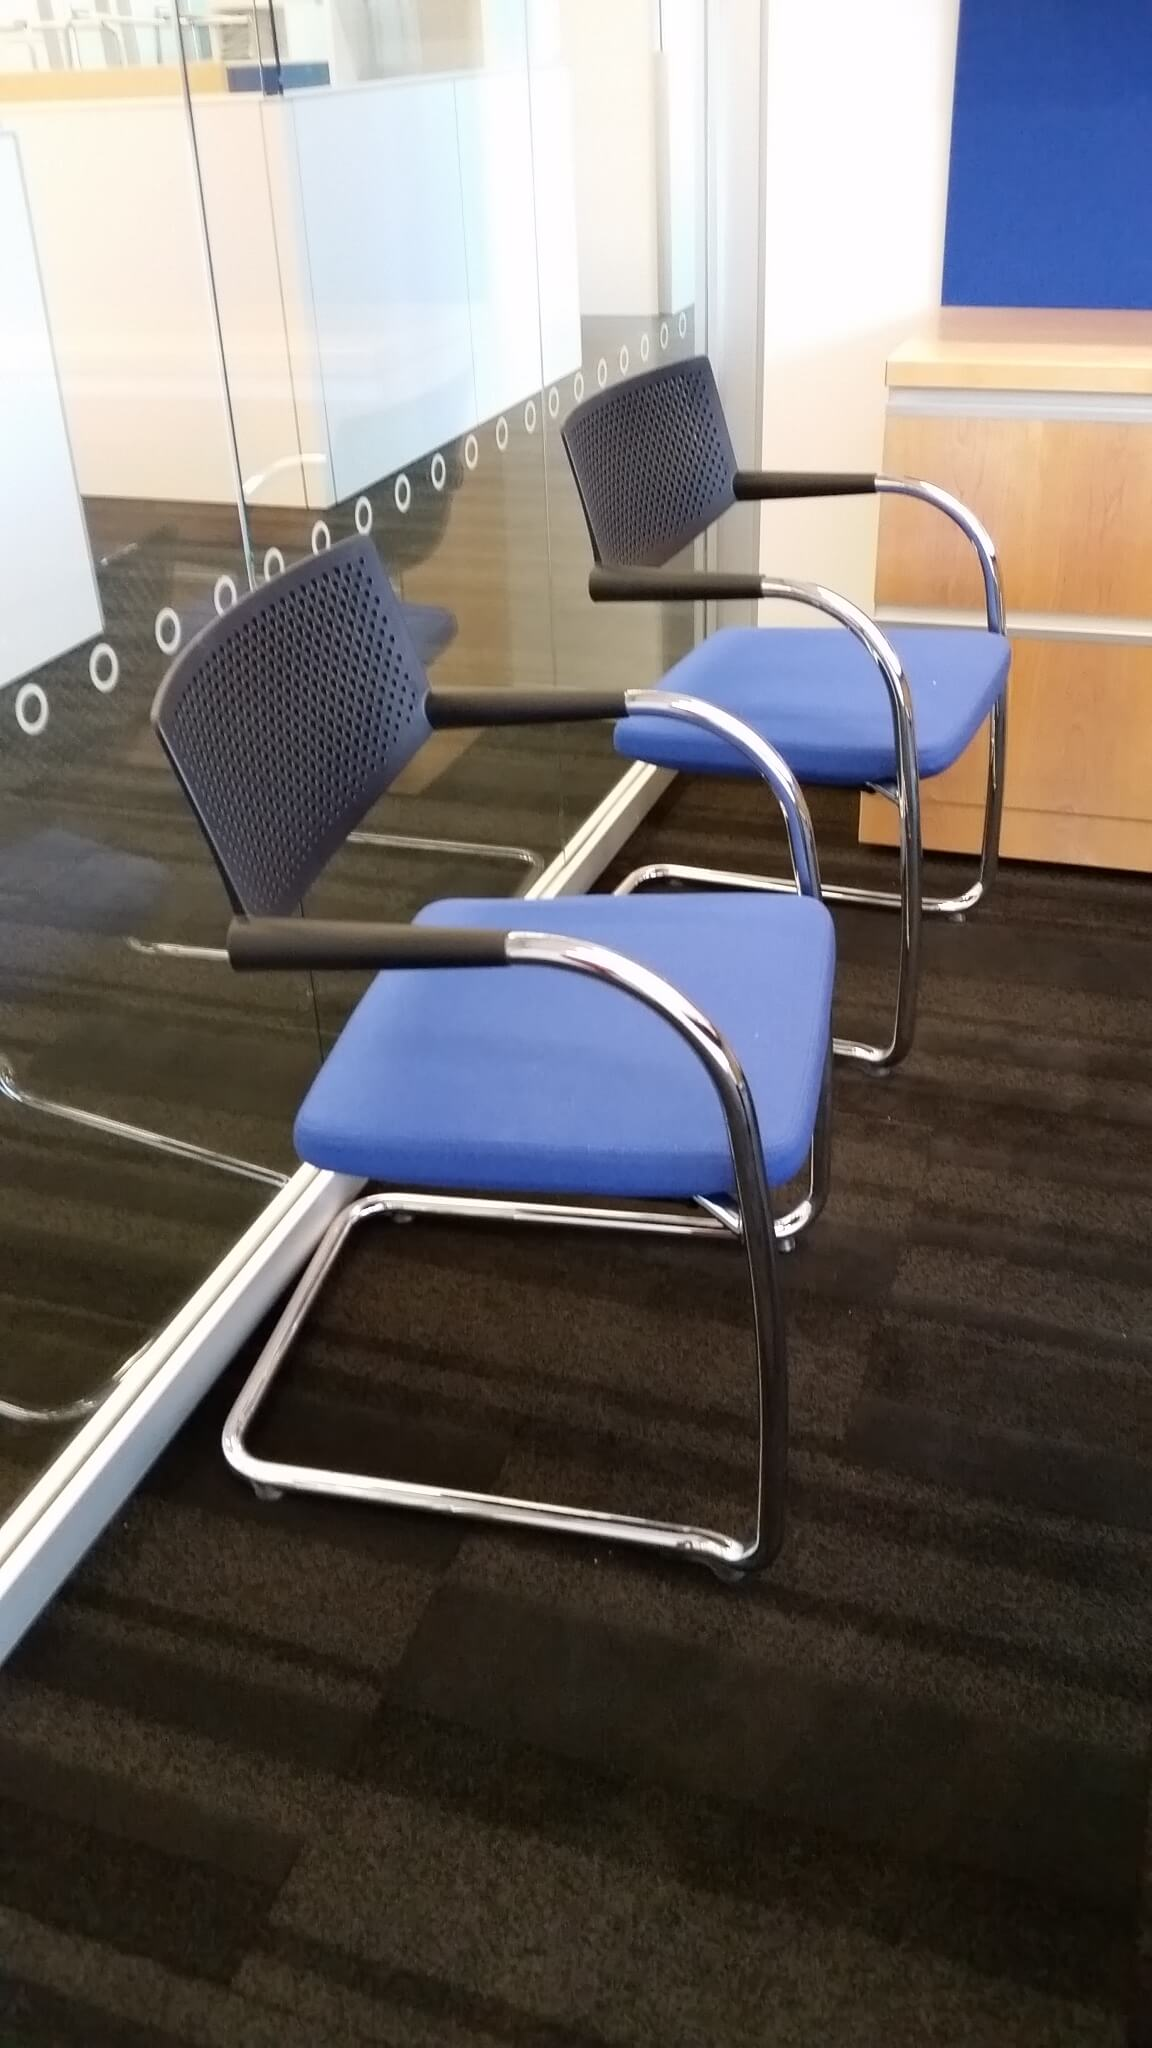 Knoll Desk Sets - Guest chairs